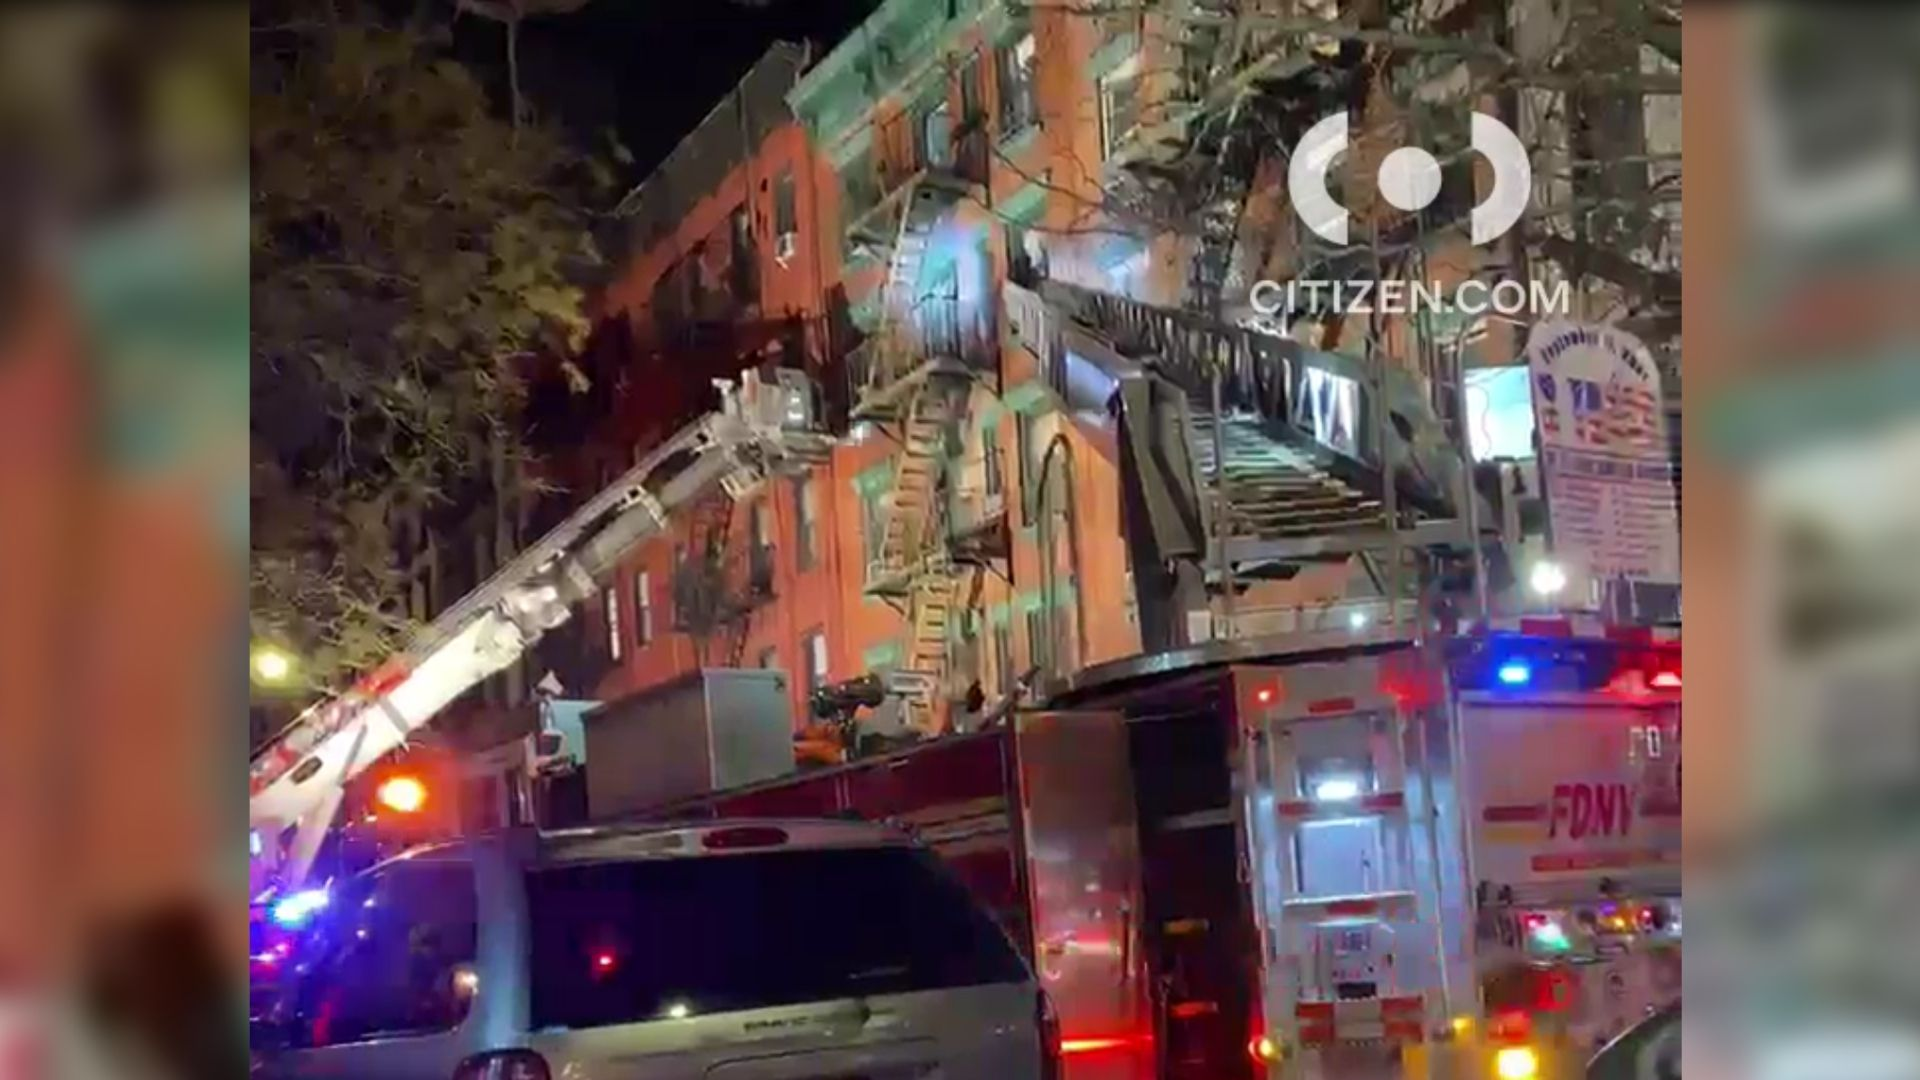 Firetruck ladders extend to a top-floor apartment in a fire in the East Village in Manhattan